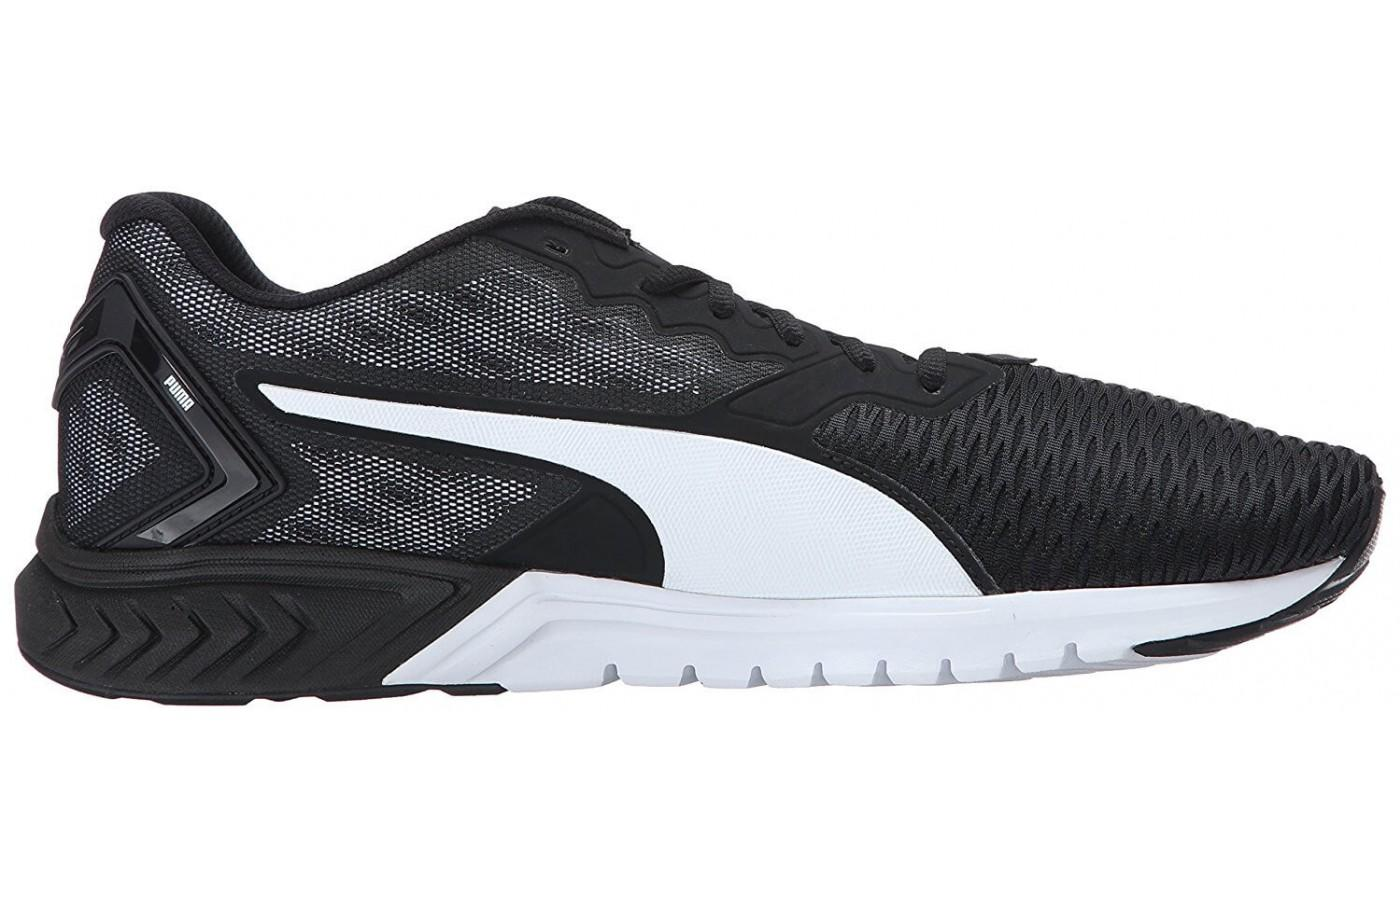 huge discount dd1c4 62586 ... the Puma Ignite Dual to the right ...